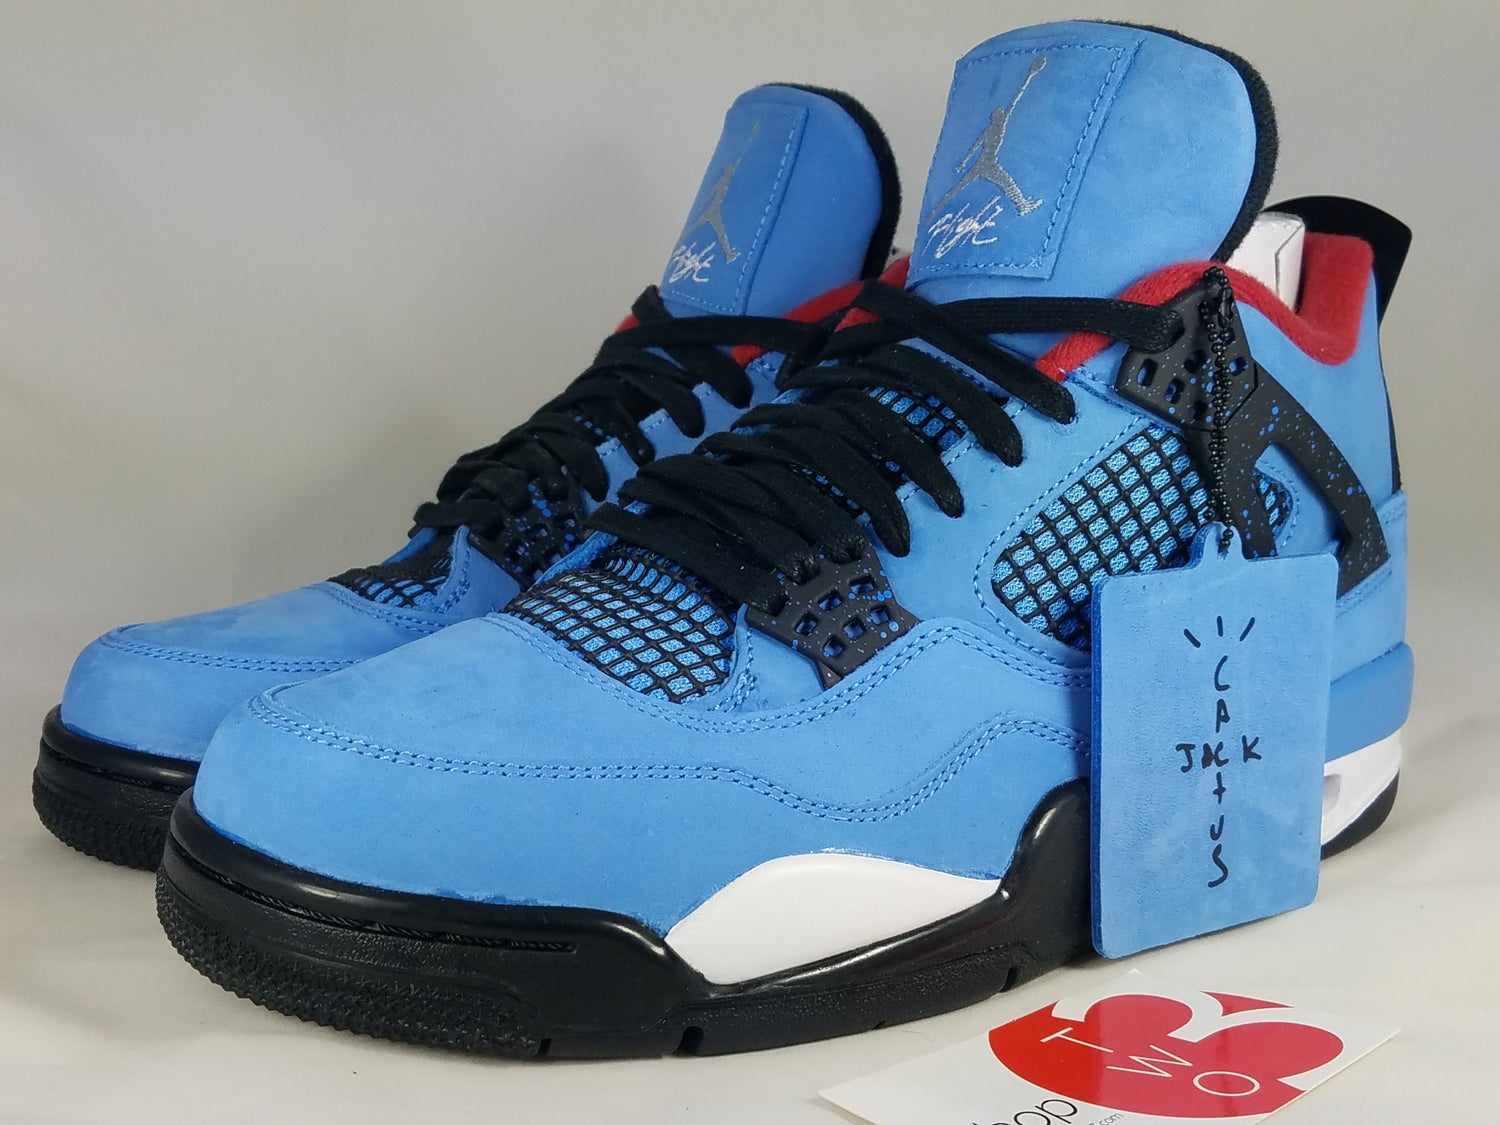 141a2a4ffeca Image of Air Jordan 4 Retro